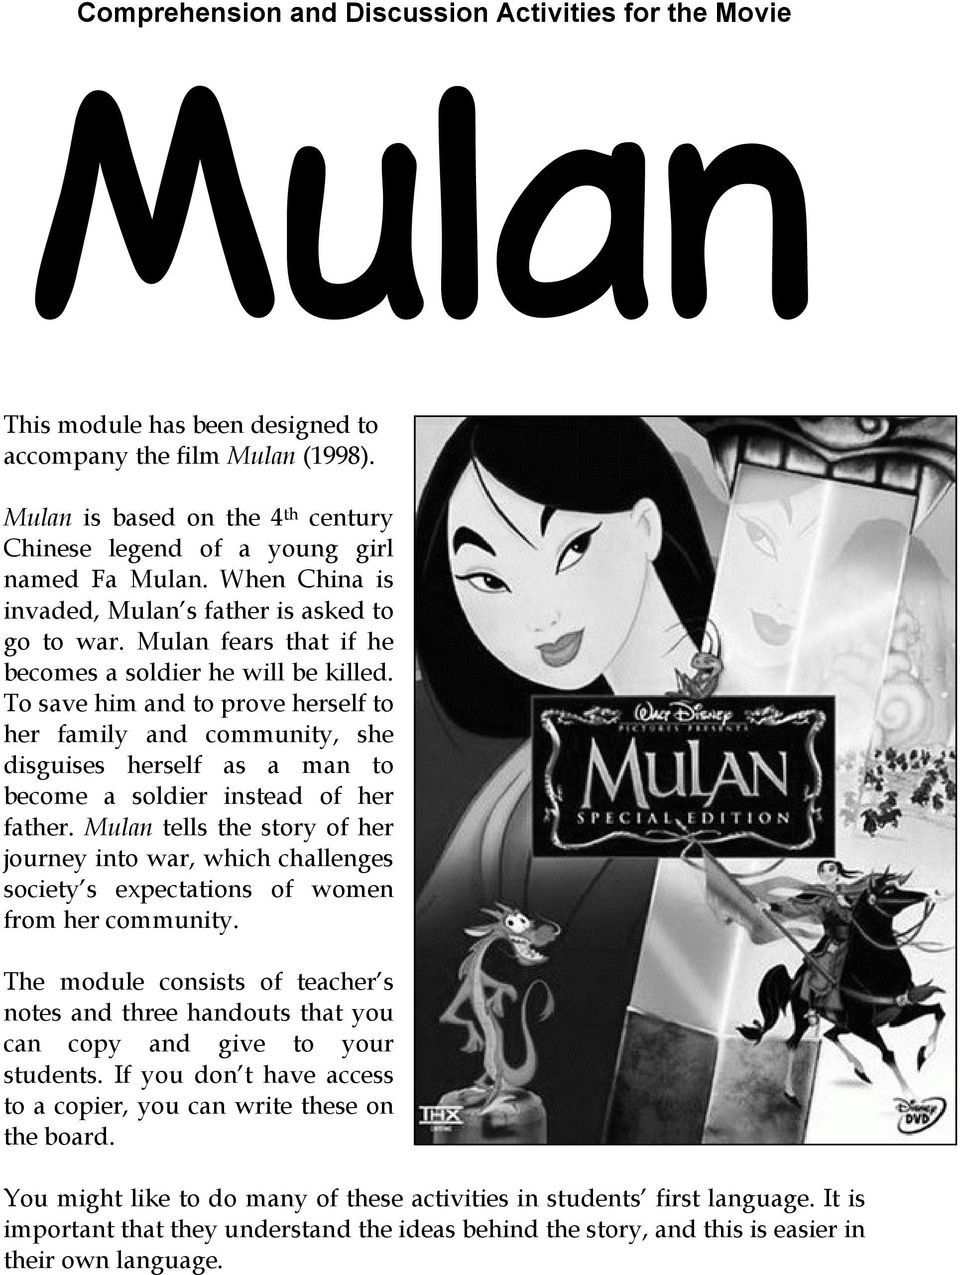 Mulan fears that if he becomes a soldier he will be killed. To save him and to prove herself to her family and community, she disguises herself as a man to become a soldier instead of her father.